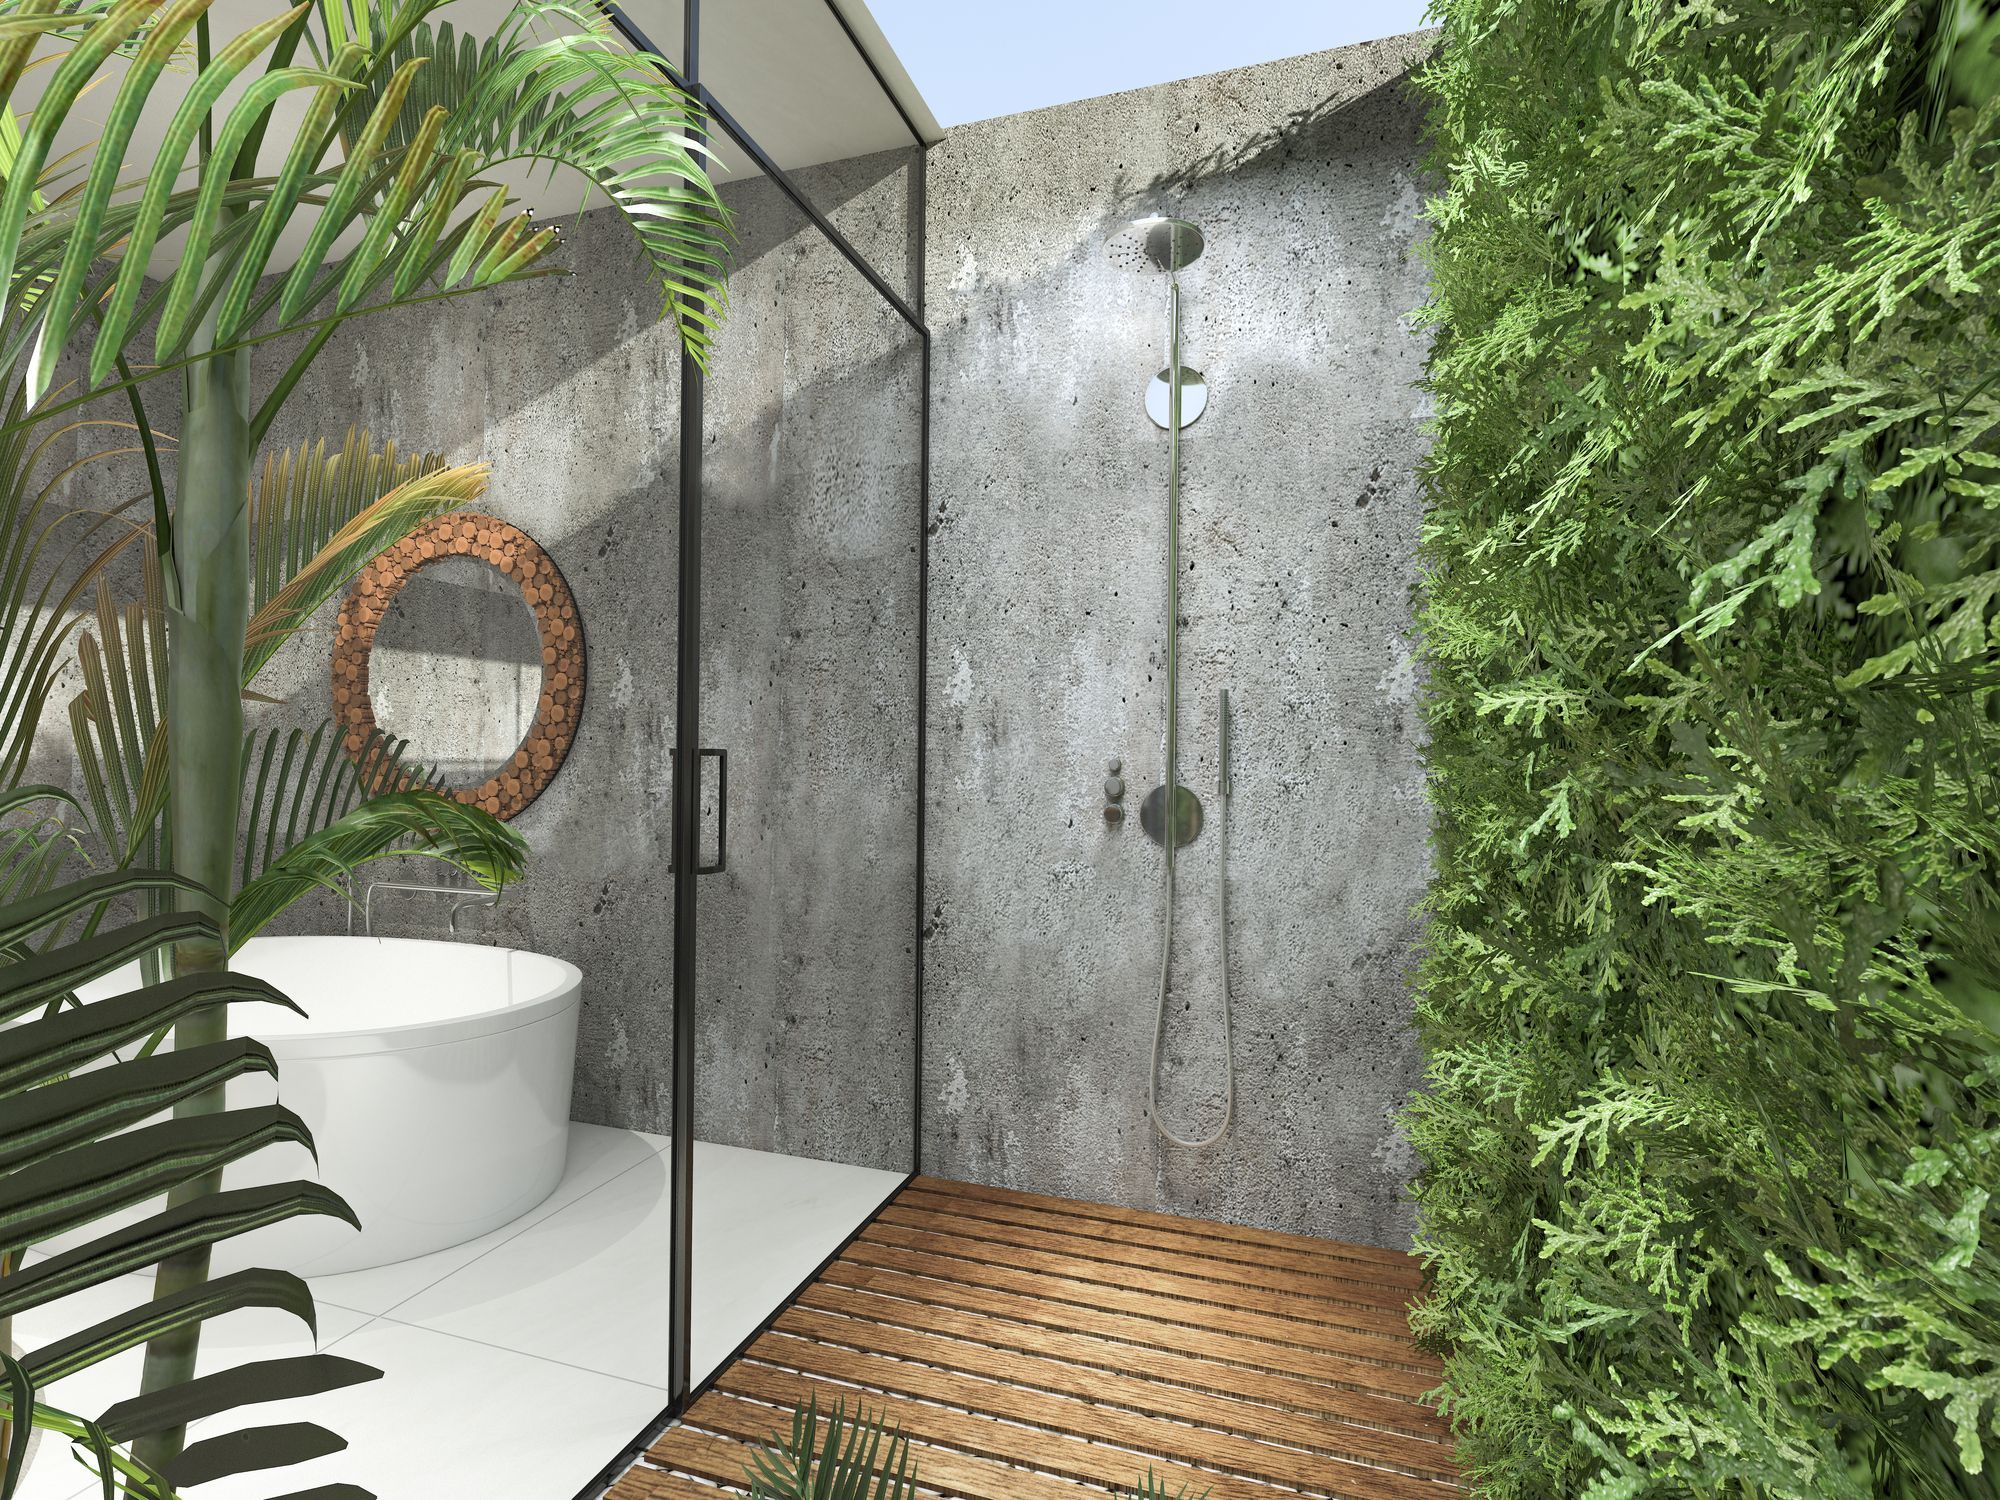 outdoor showers & 17 Outdoor Shower Design Ideas - Chic Enclosures for Outdoor Showers